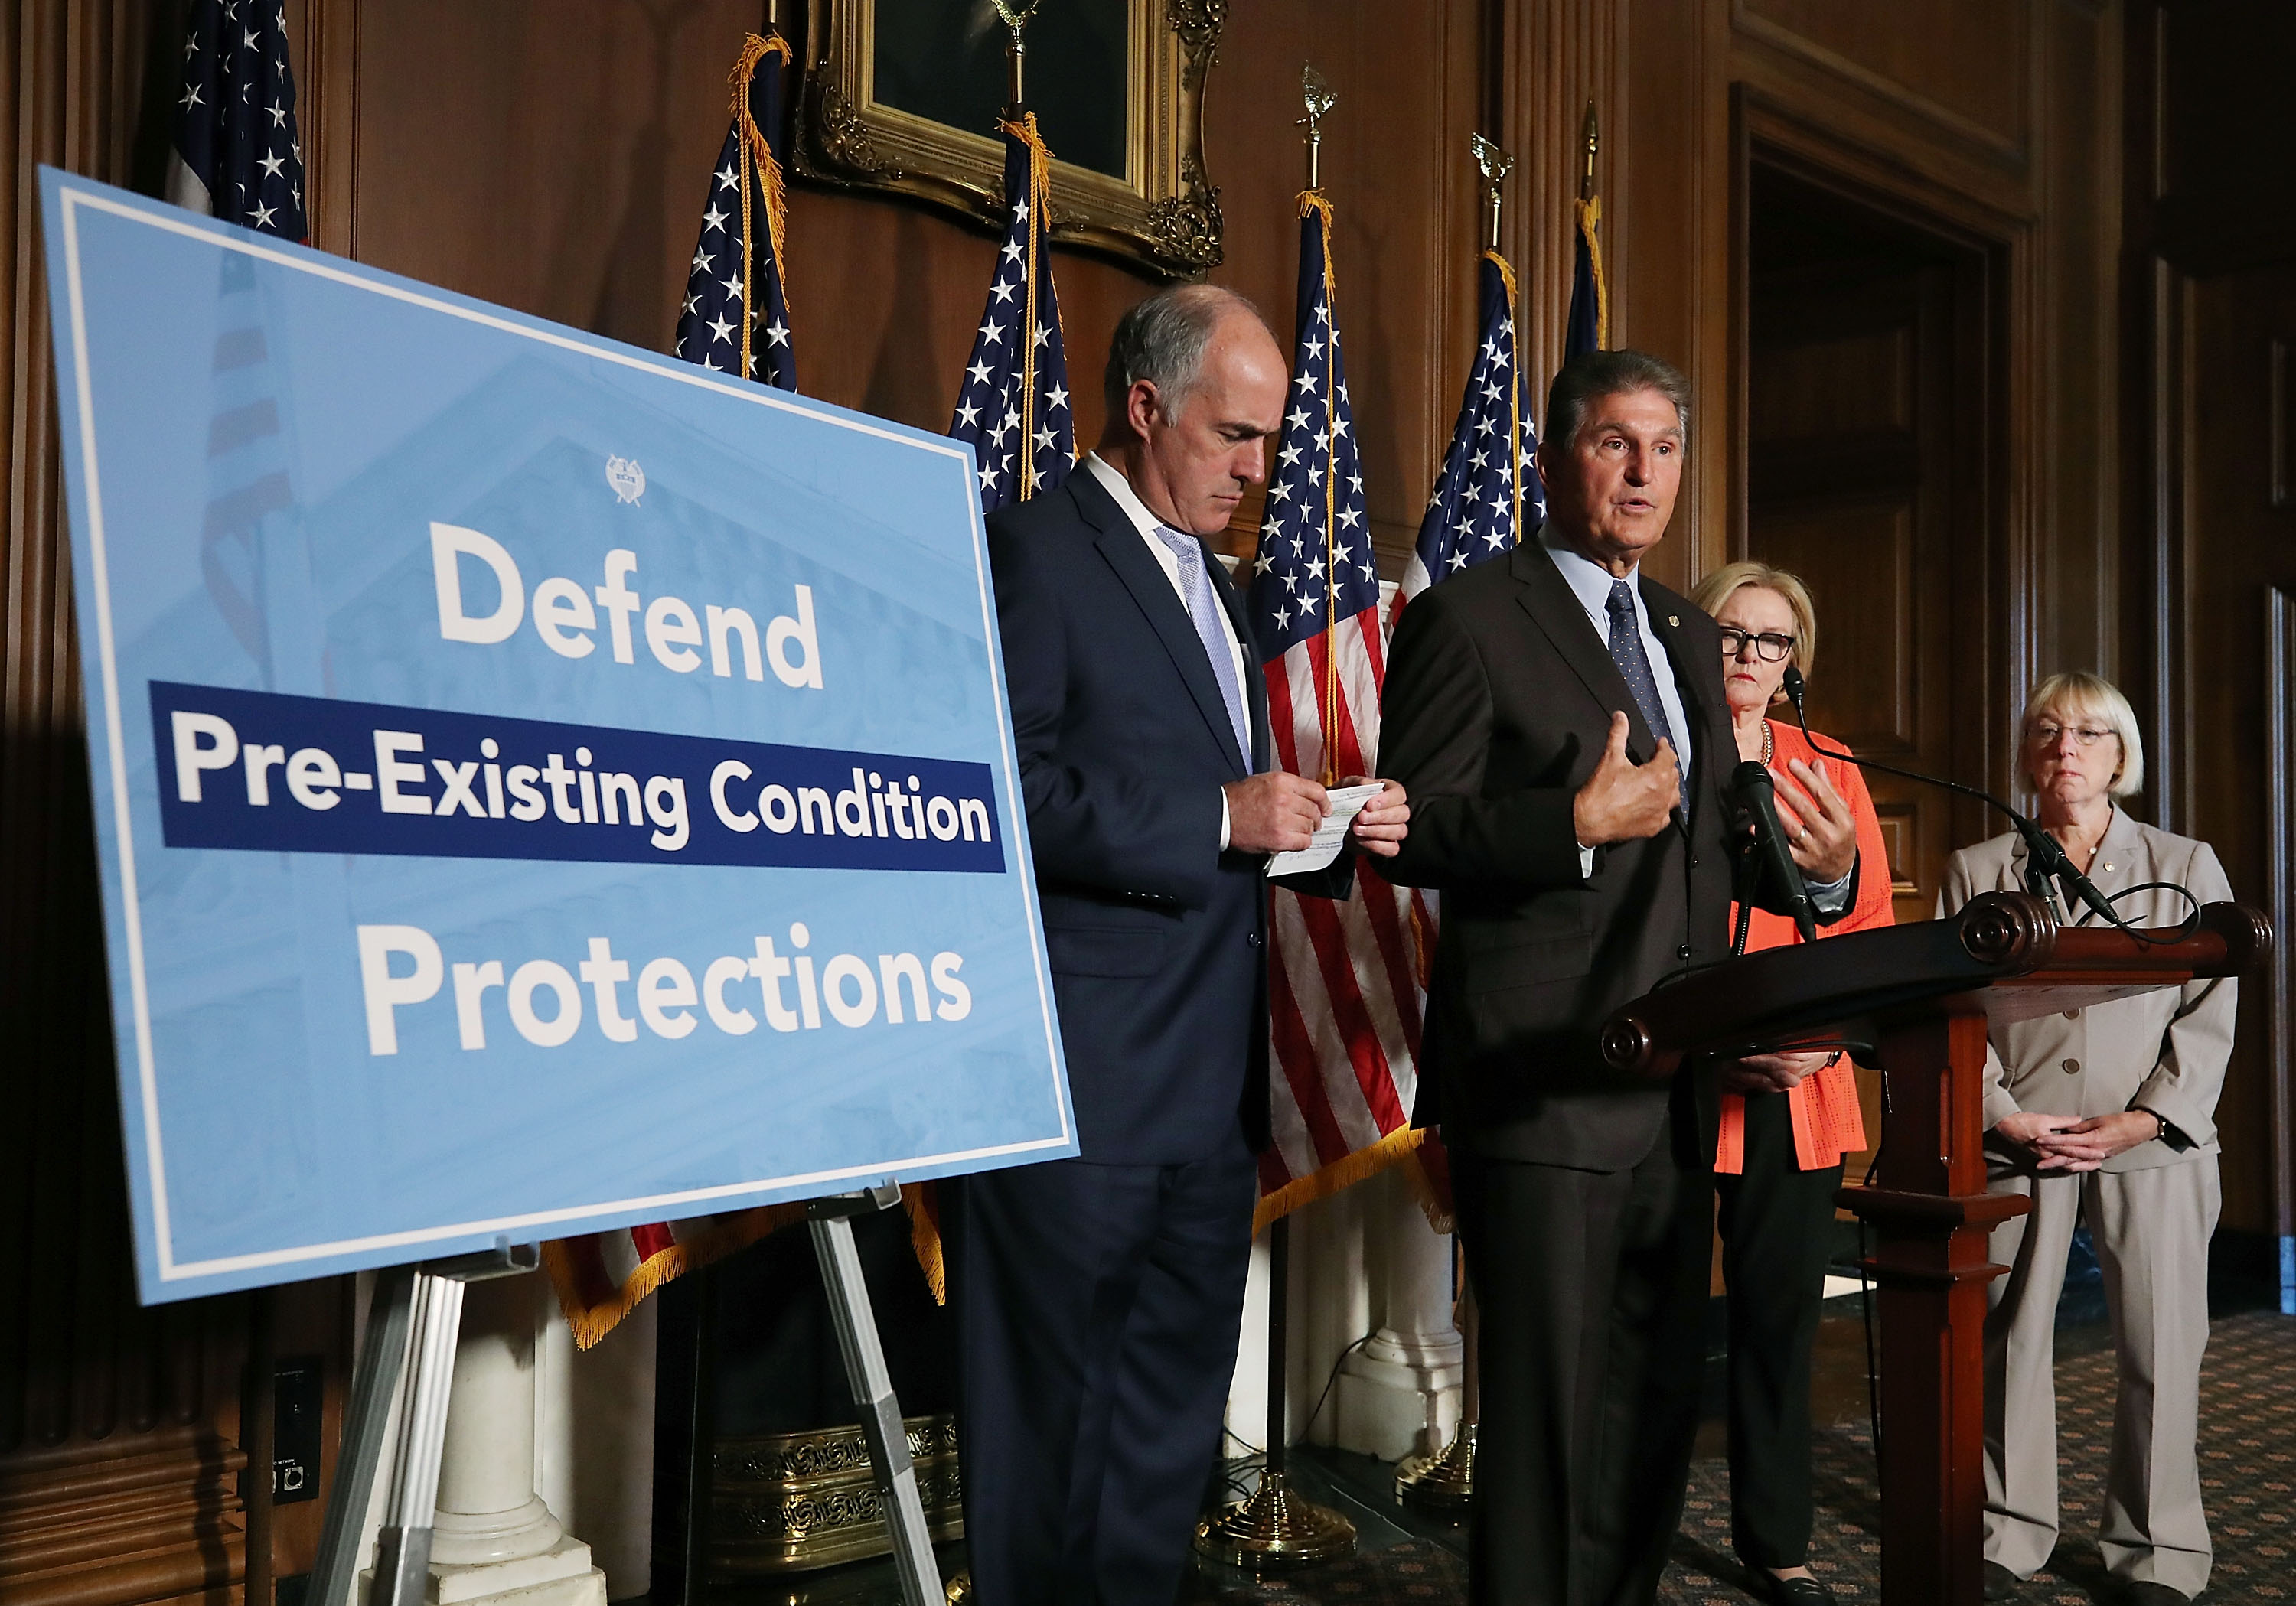 Senate Democratic Leader Chuck Schumer Holds News Conference To Discuss Proposal To Protect Those With Pre-Existing Conditions